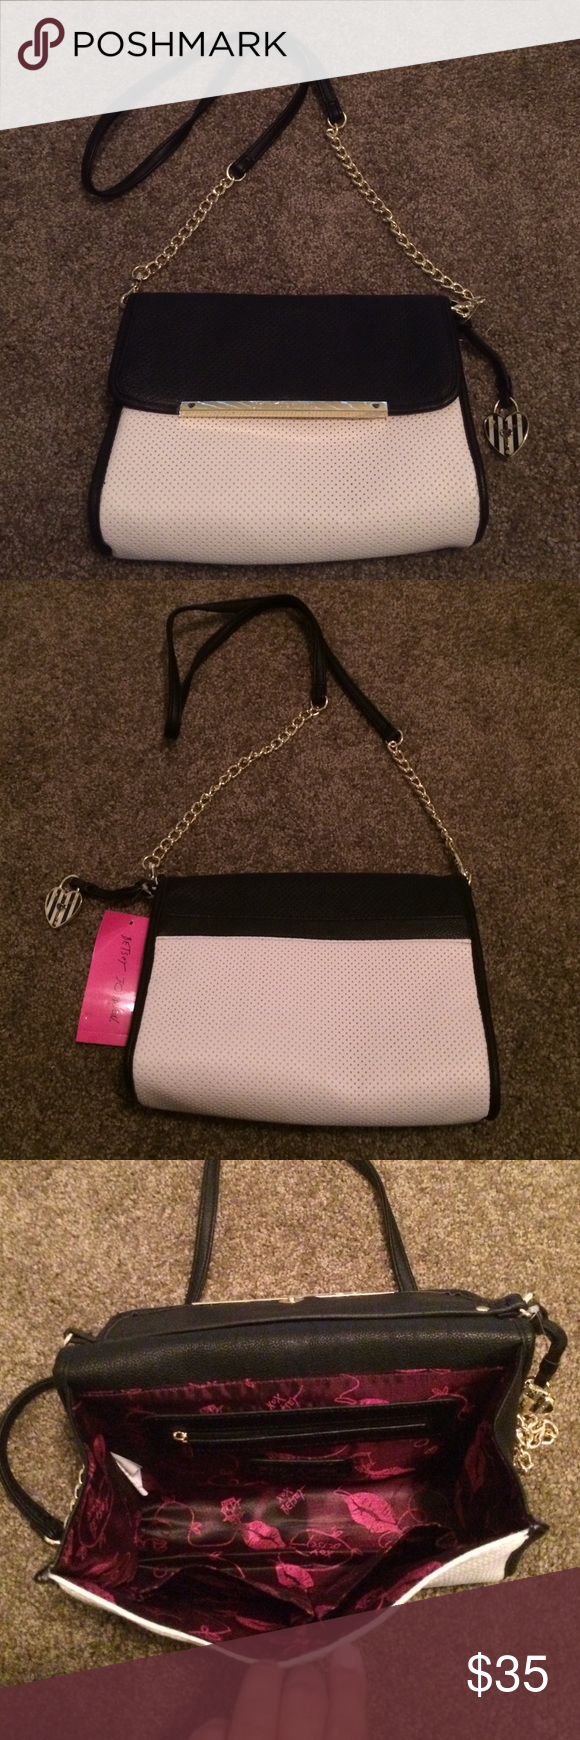 NWT Betsy Johnson Purse! Brand new!! Plastic still on name plate! Perfect size has 2 inside pockets and an inside zipper pocket. Back has an open pocket. Wear cross body or over the shoulder! Betsey Johnson Bags Crossbody Bags